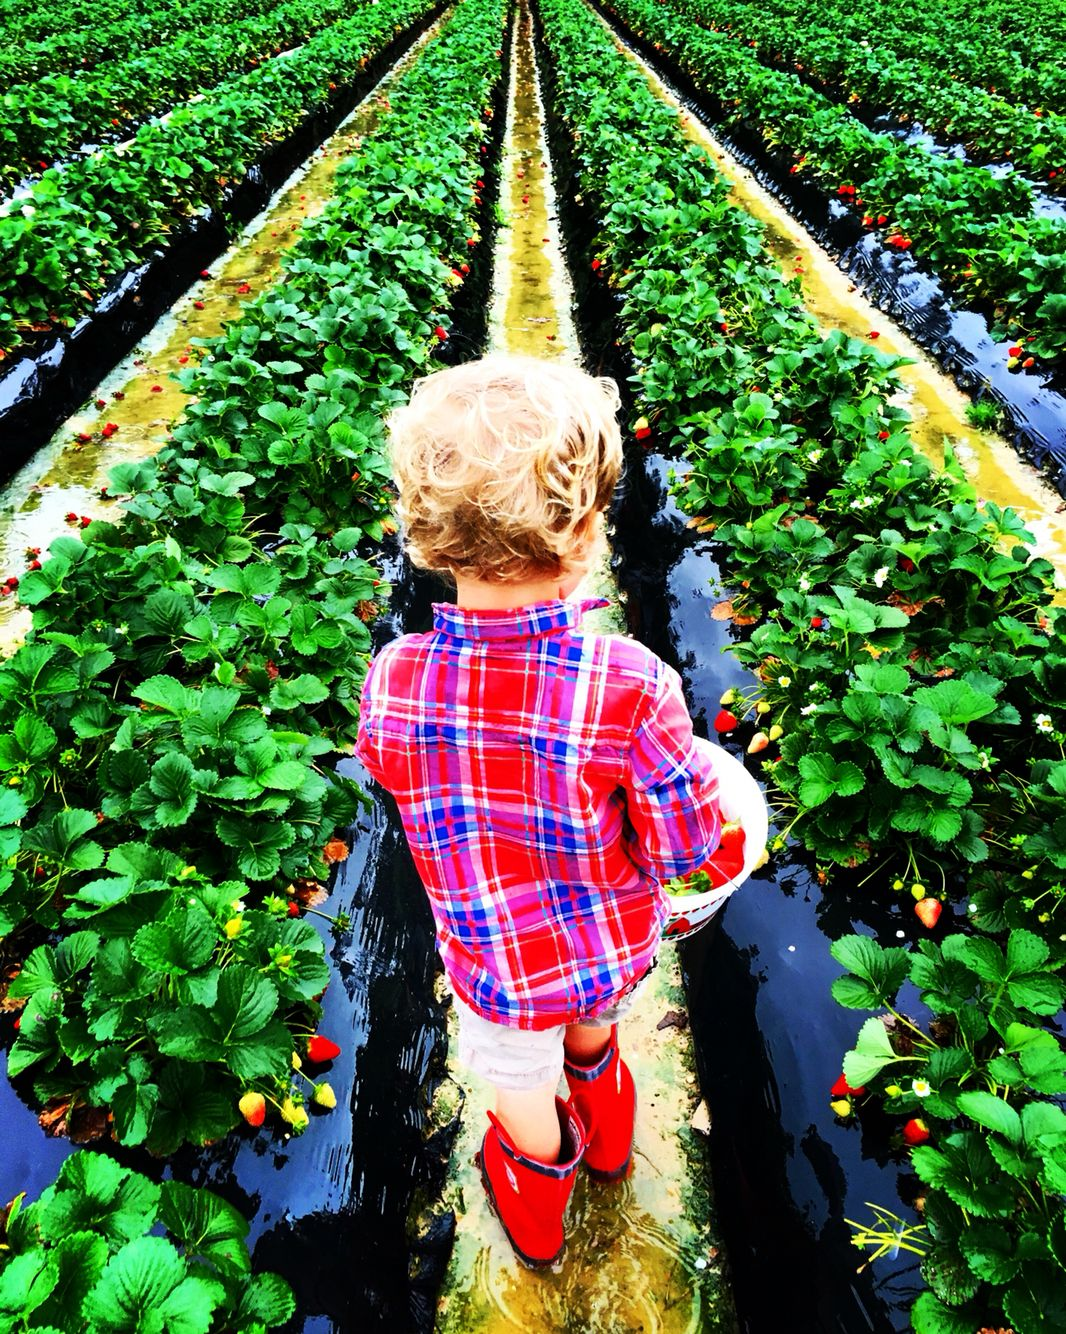 Visit to the strawberry farm - fun trip to take with young kids.